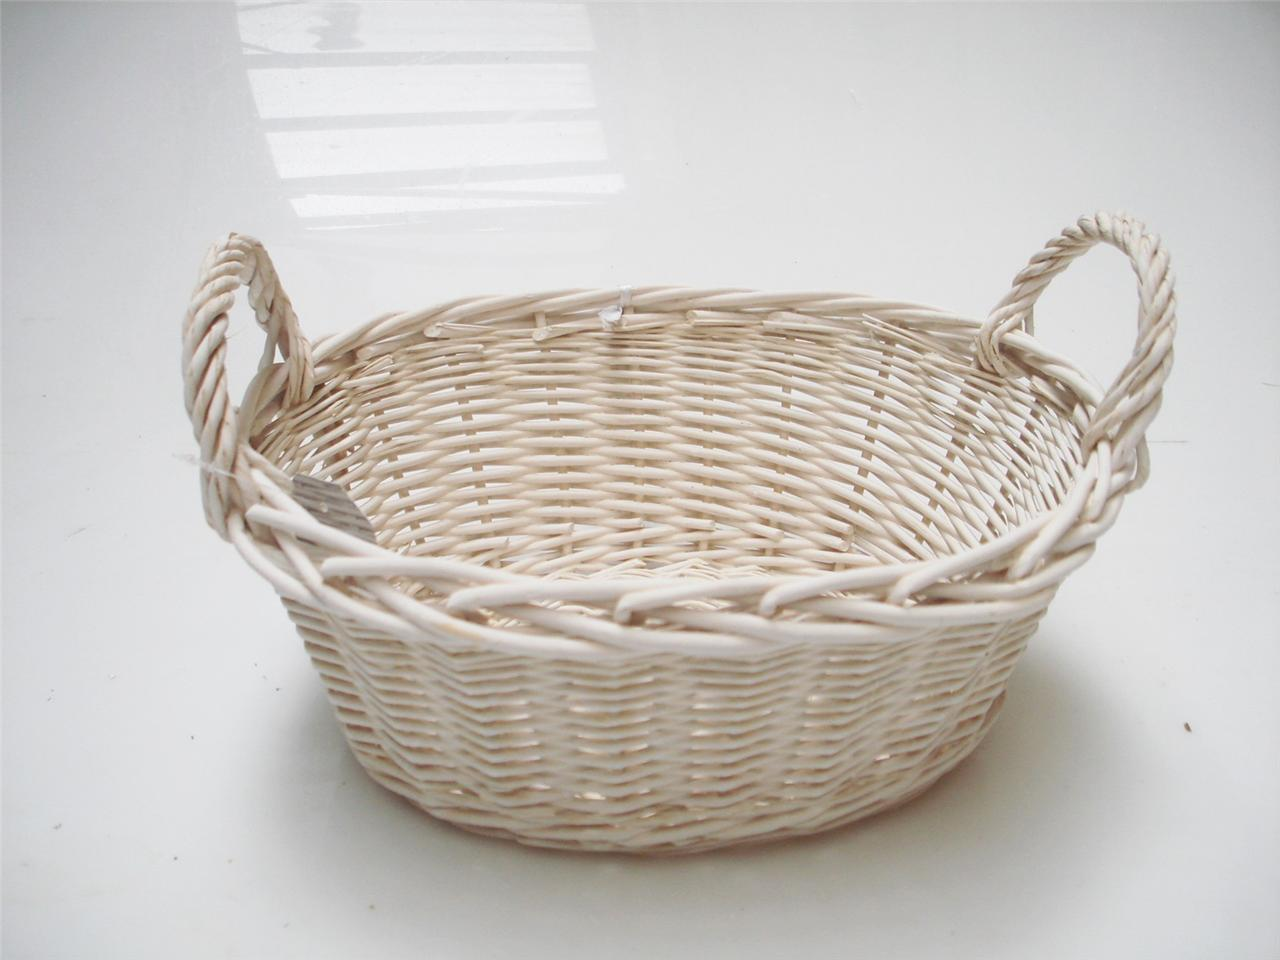 oval white french shabby chic wicker kitchen crafts bathroom storage basket ebay. Black Bedroom Furniture Sets. Home Design Ideas